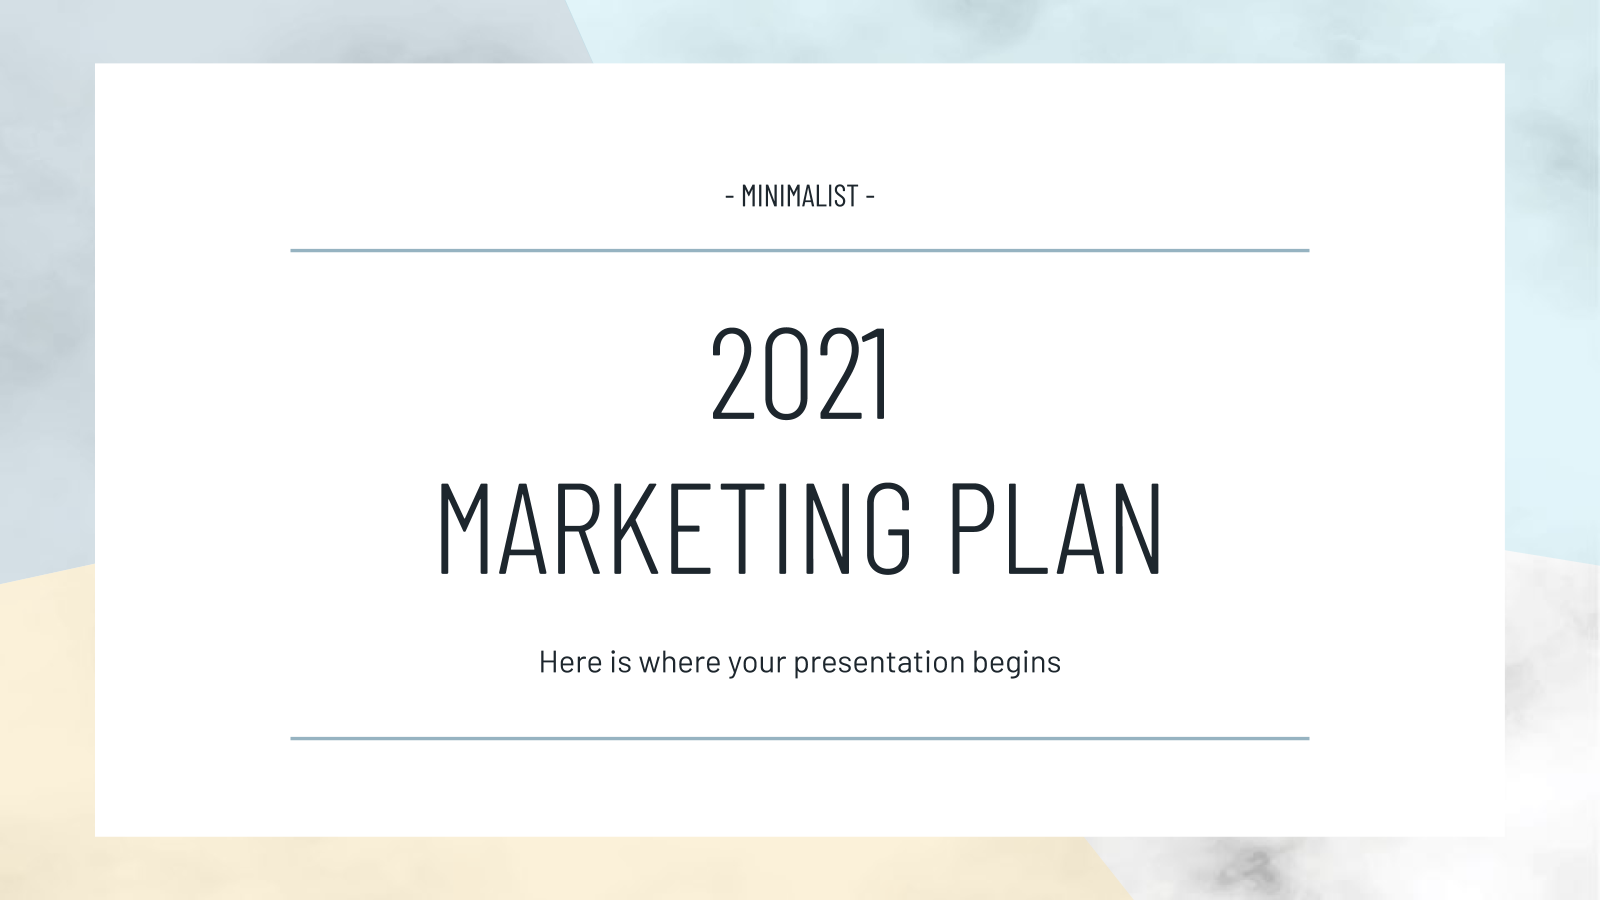 2021 Marketing Plan presentation template